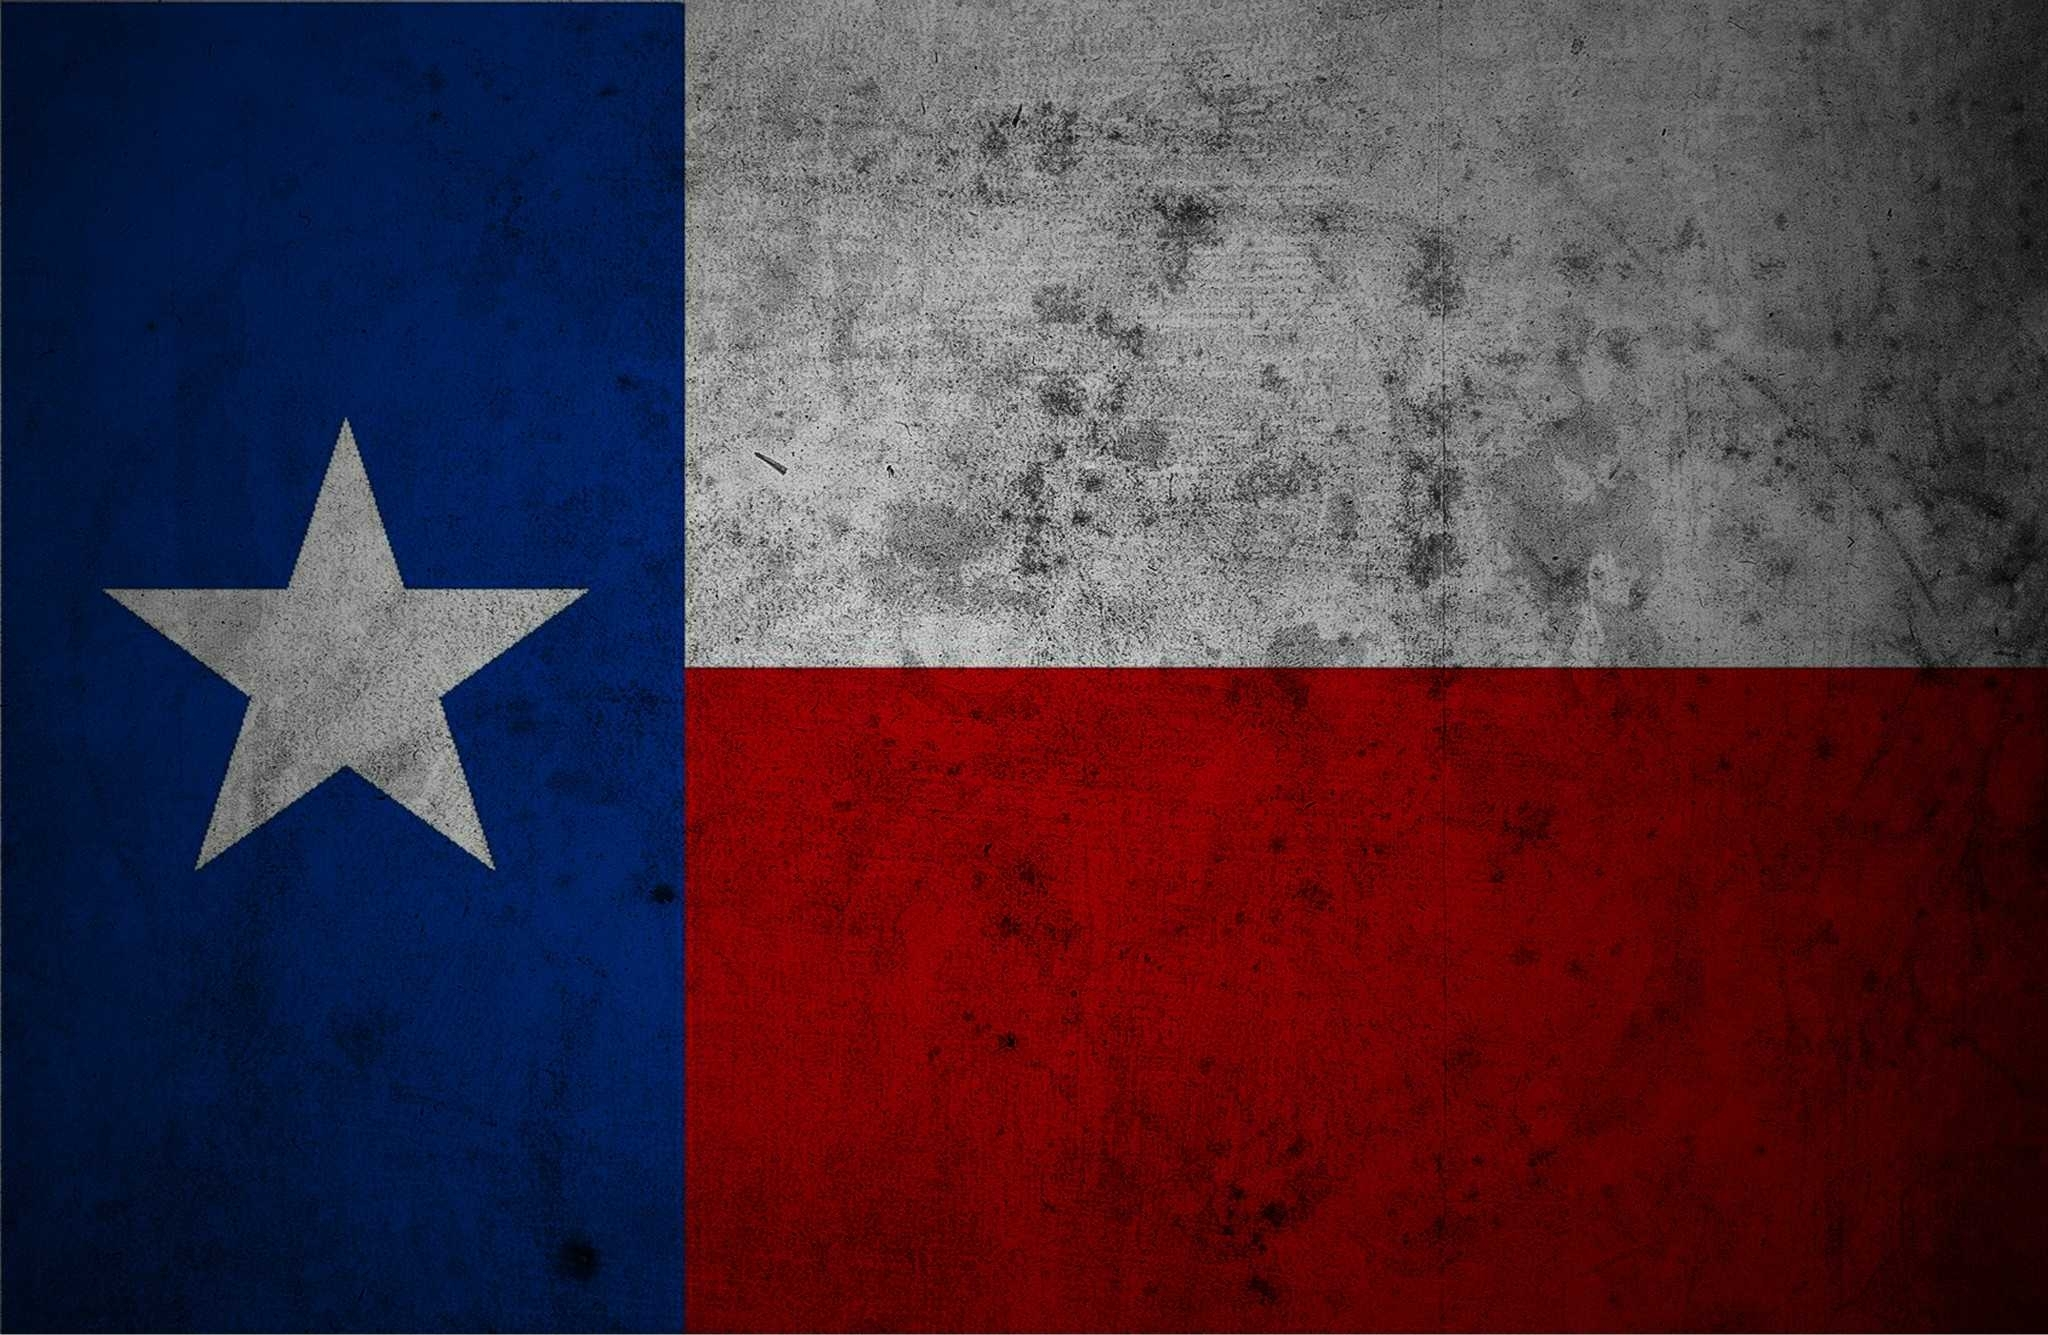 backgrounds of texas flag iphone wallpaper high resolution